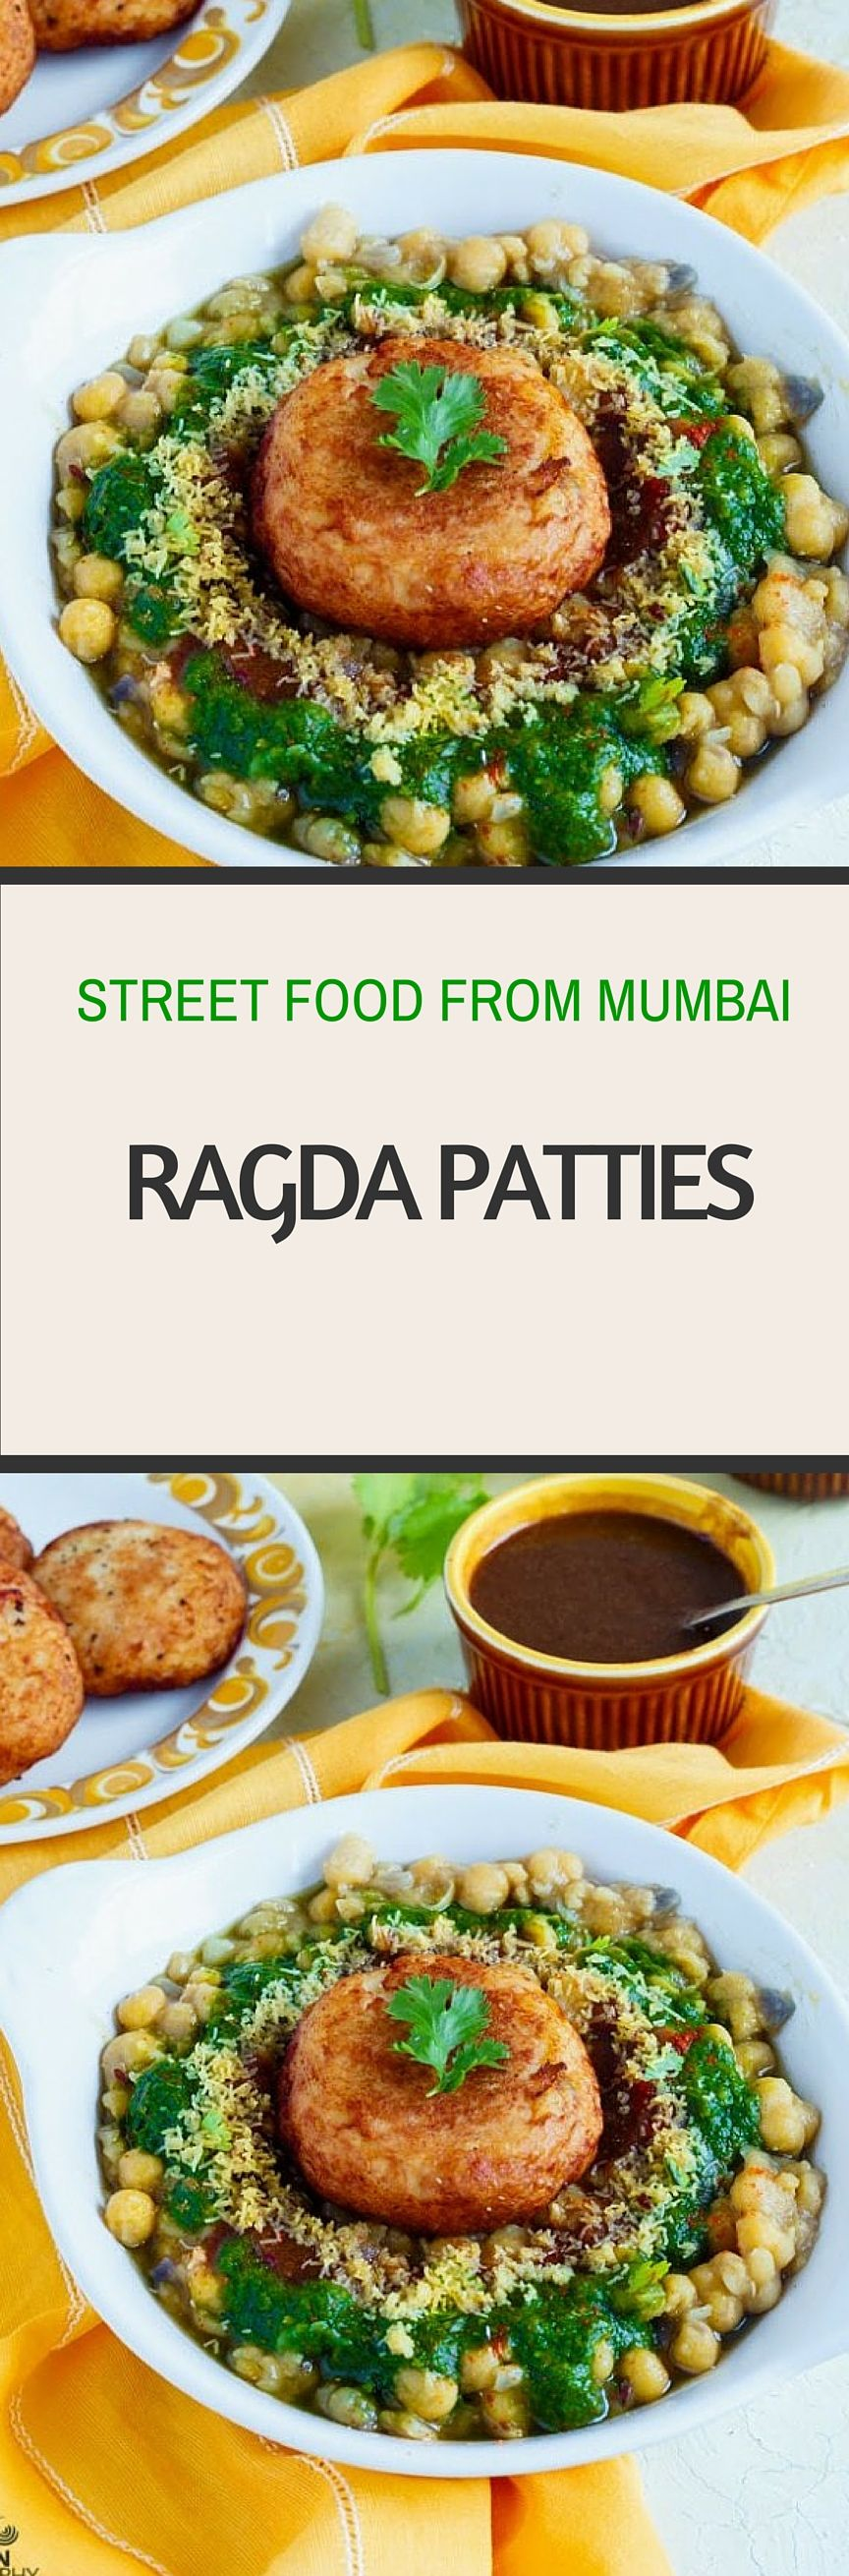 Ragda patties street food from mumbai street food mumbai and indian street food forumfinder Choice Image